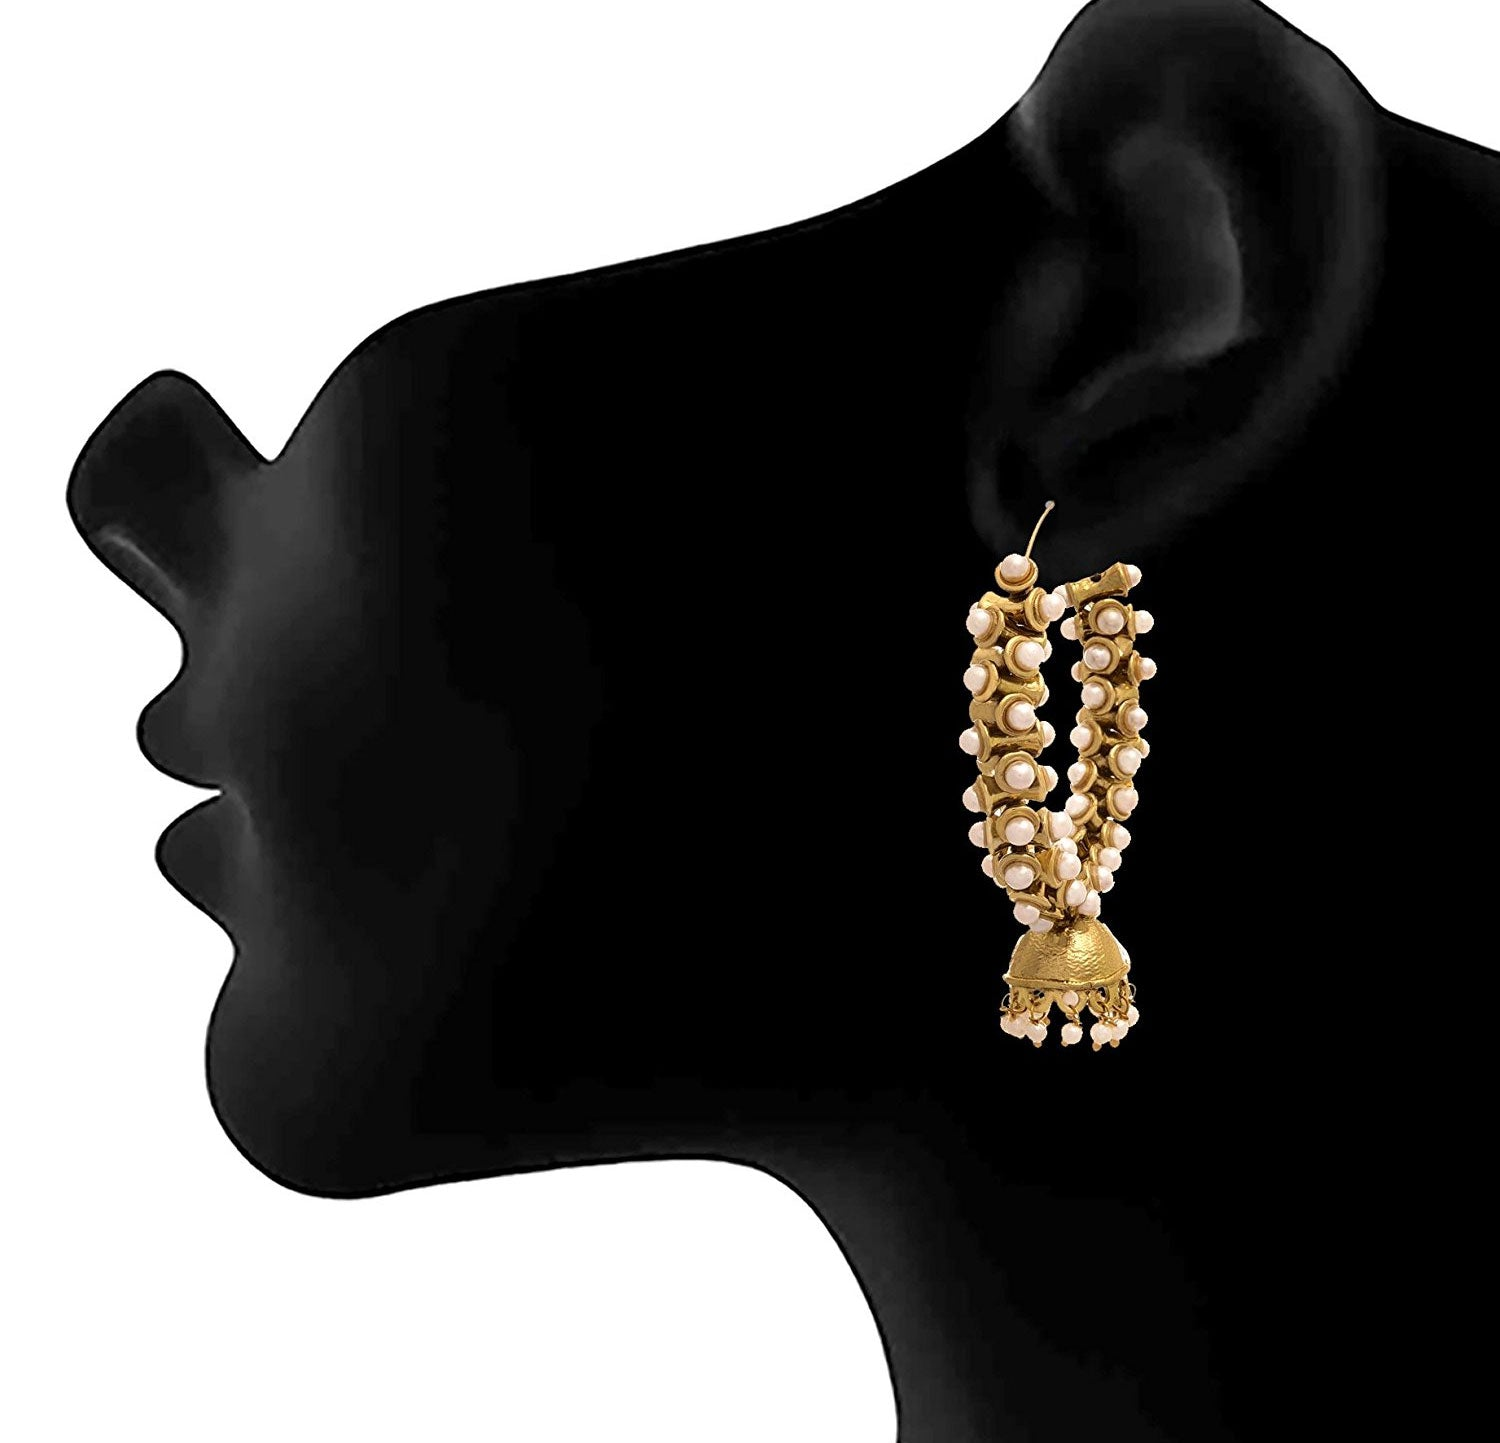 JFL - Traditional Stylish Ethnic One Gram Gold Plated Pearls Designer Bali Earring for Women & Girls.